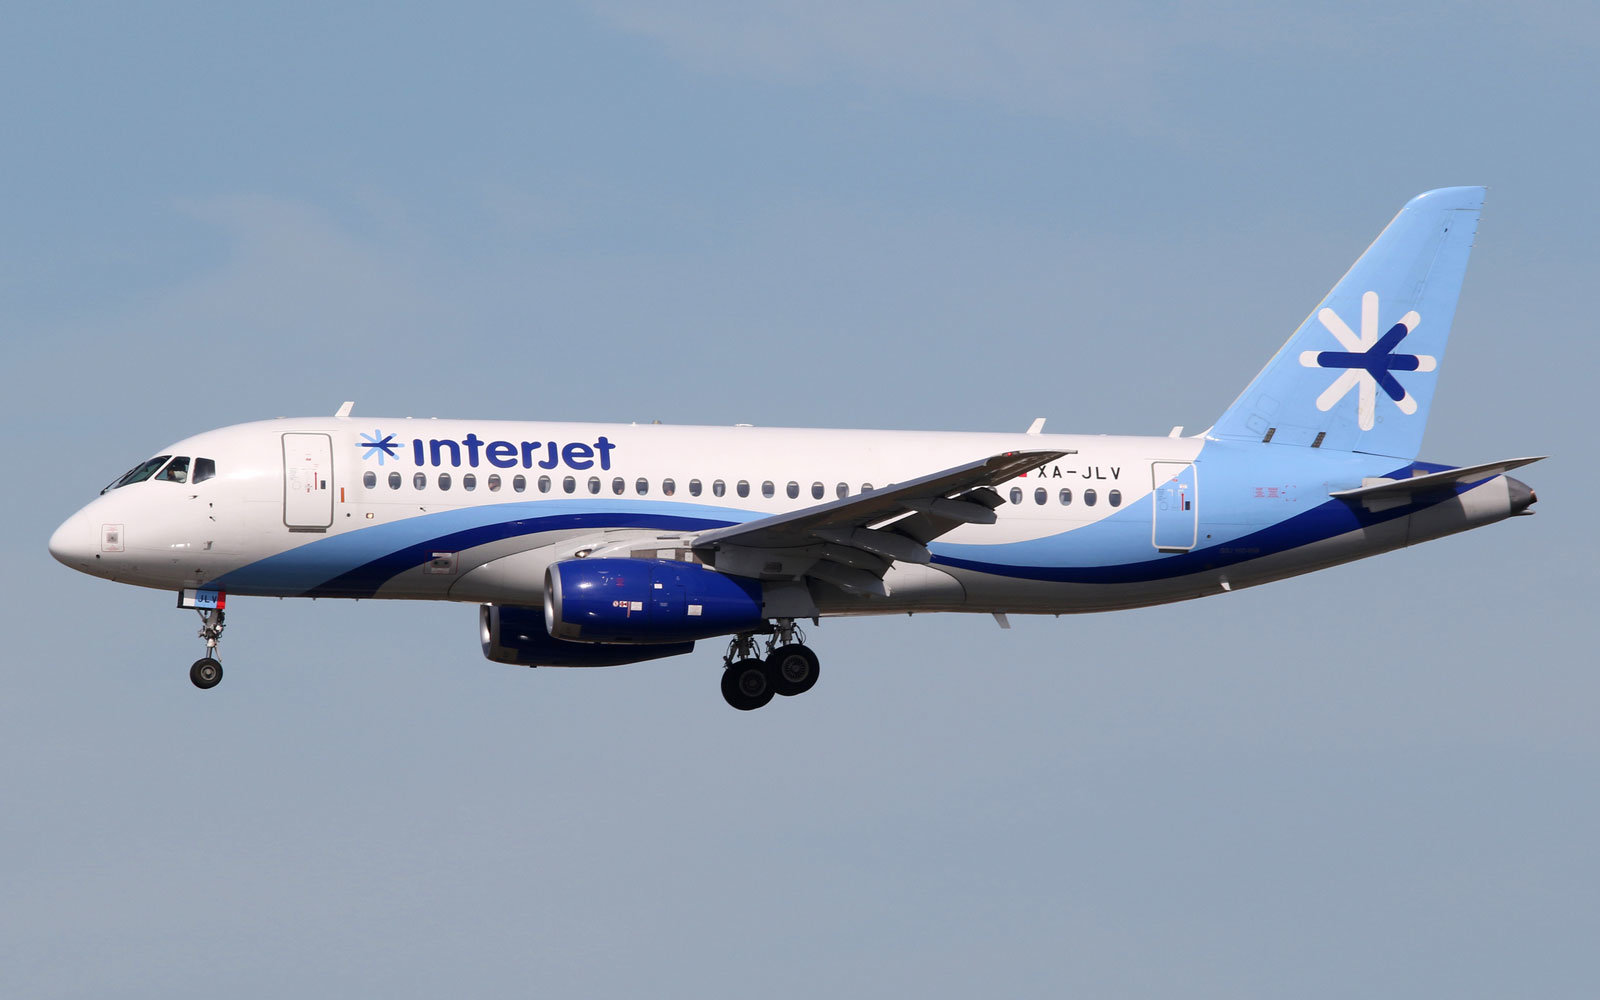 Interjet offered a reward for a lost dog without telling the owner.